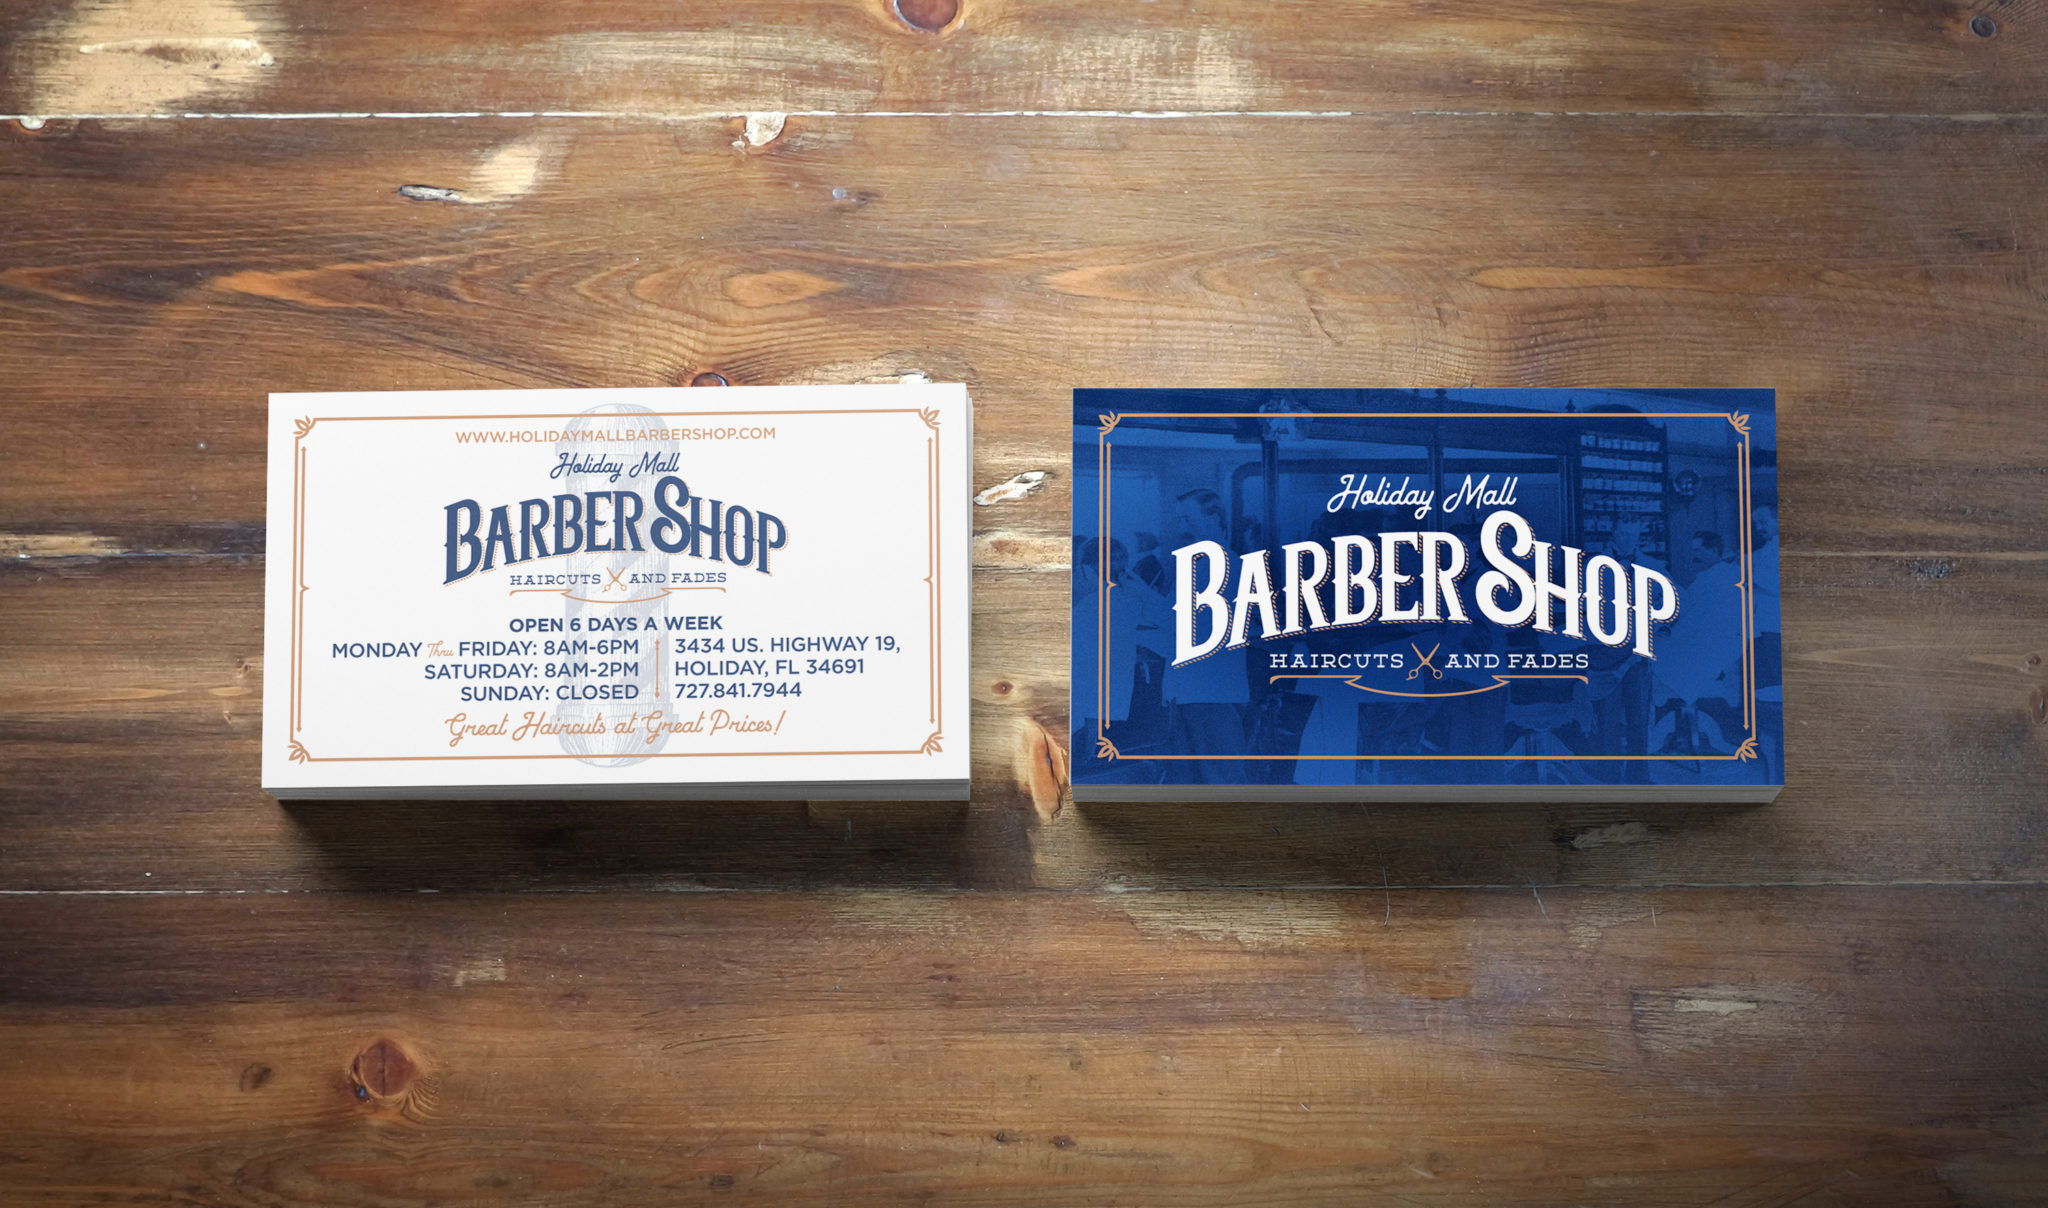 Barbershop business card design